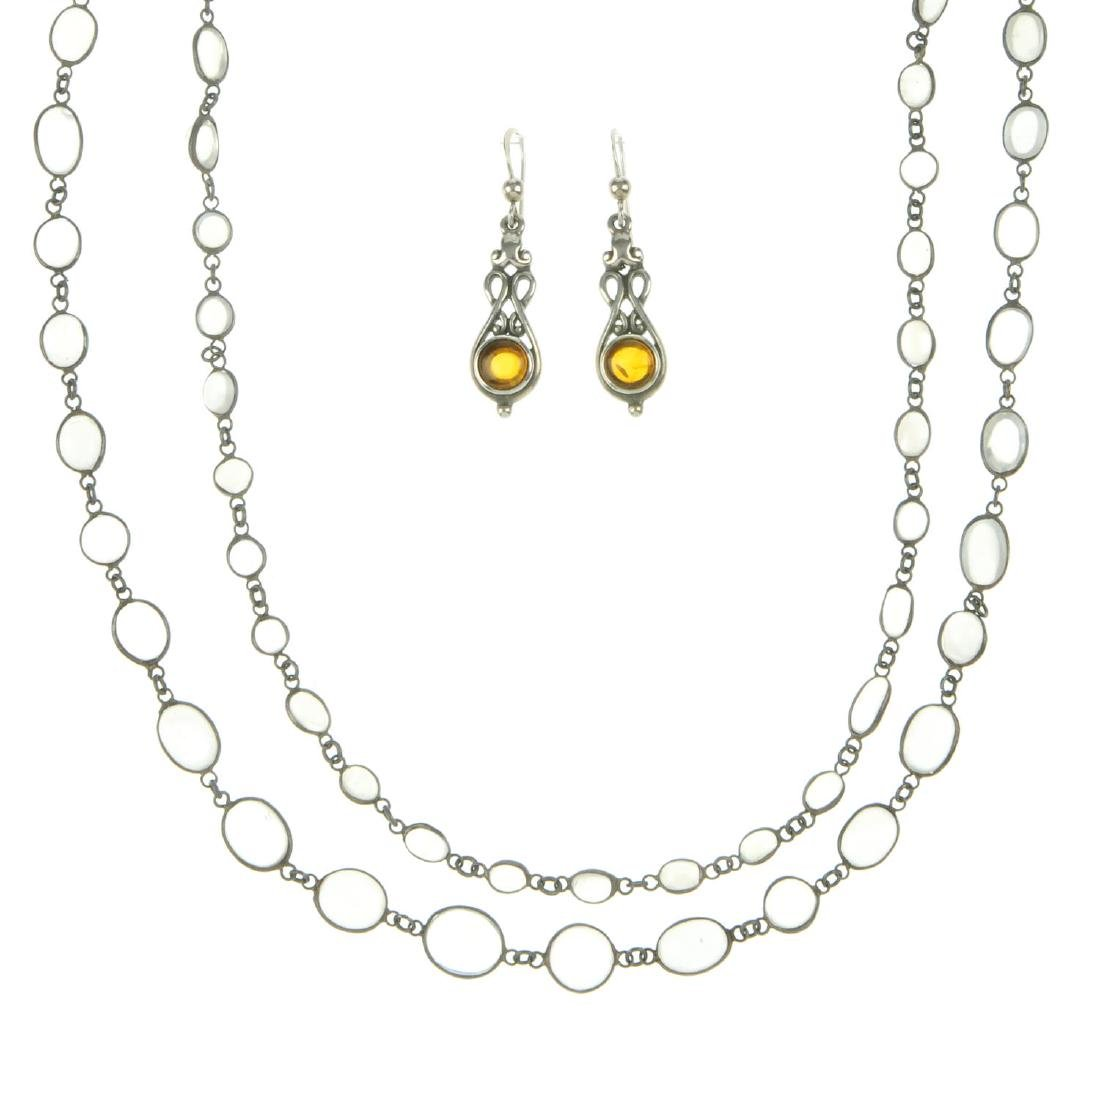 A selection of silver and white metal gem-set